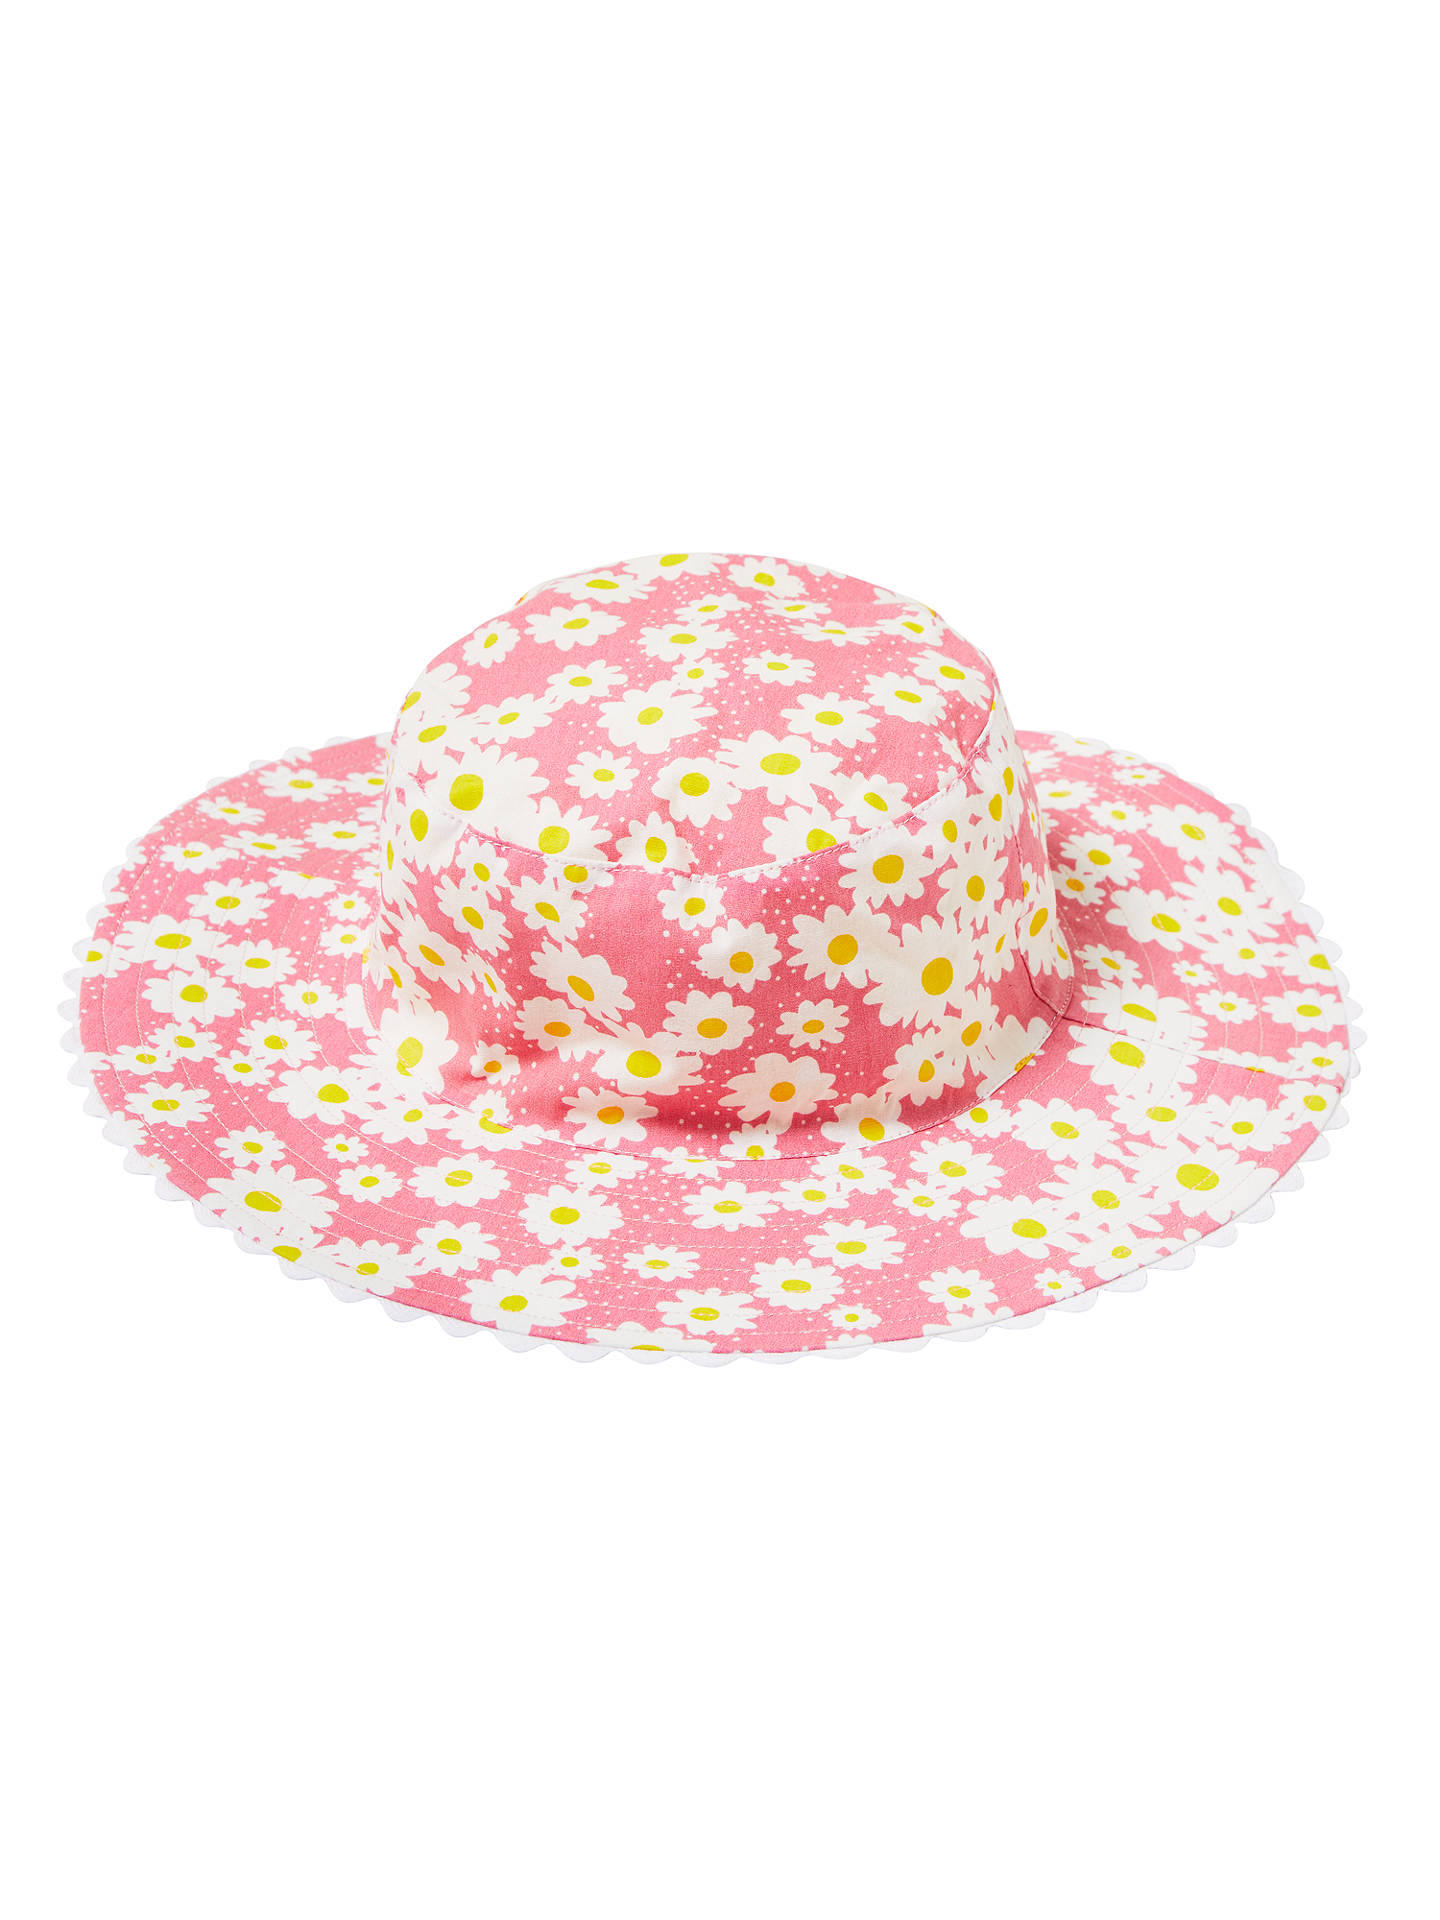 16e3cc63b465fc Buy John Lewis Children's Reversible Daisy Bucket Hat, Pink, S Online at  johnlewis.